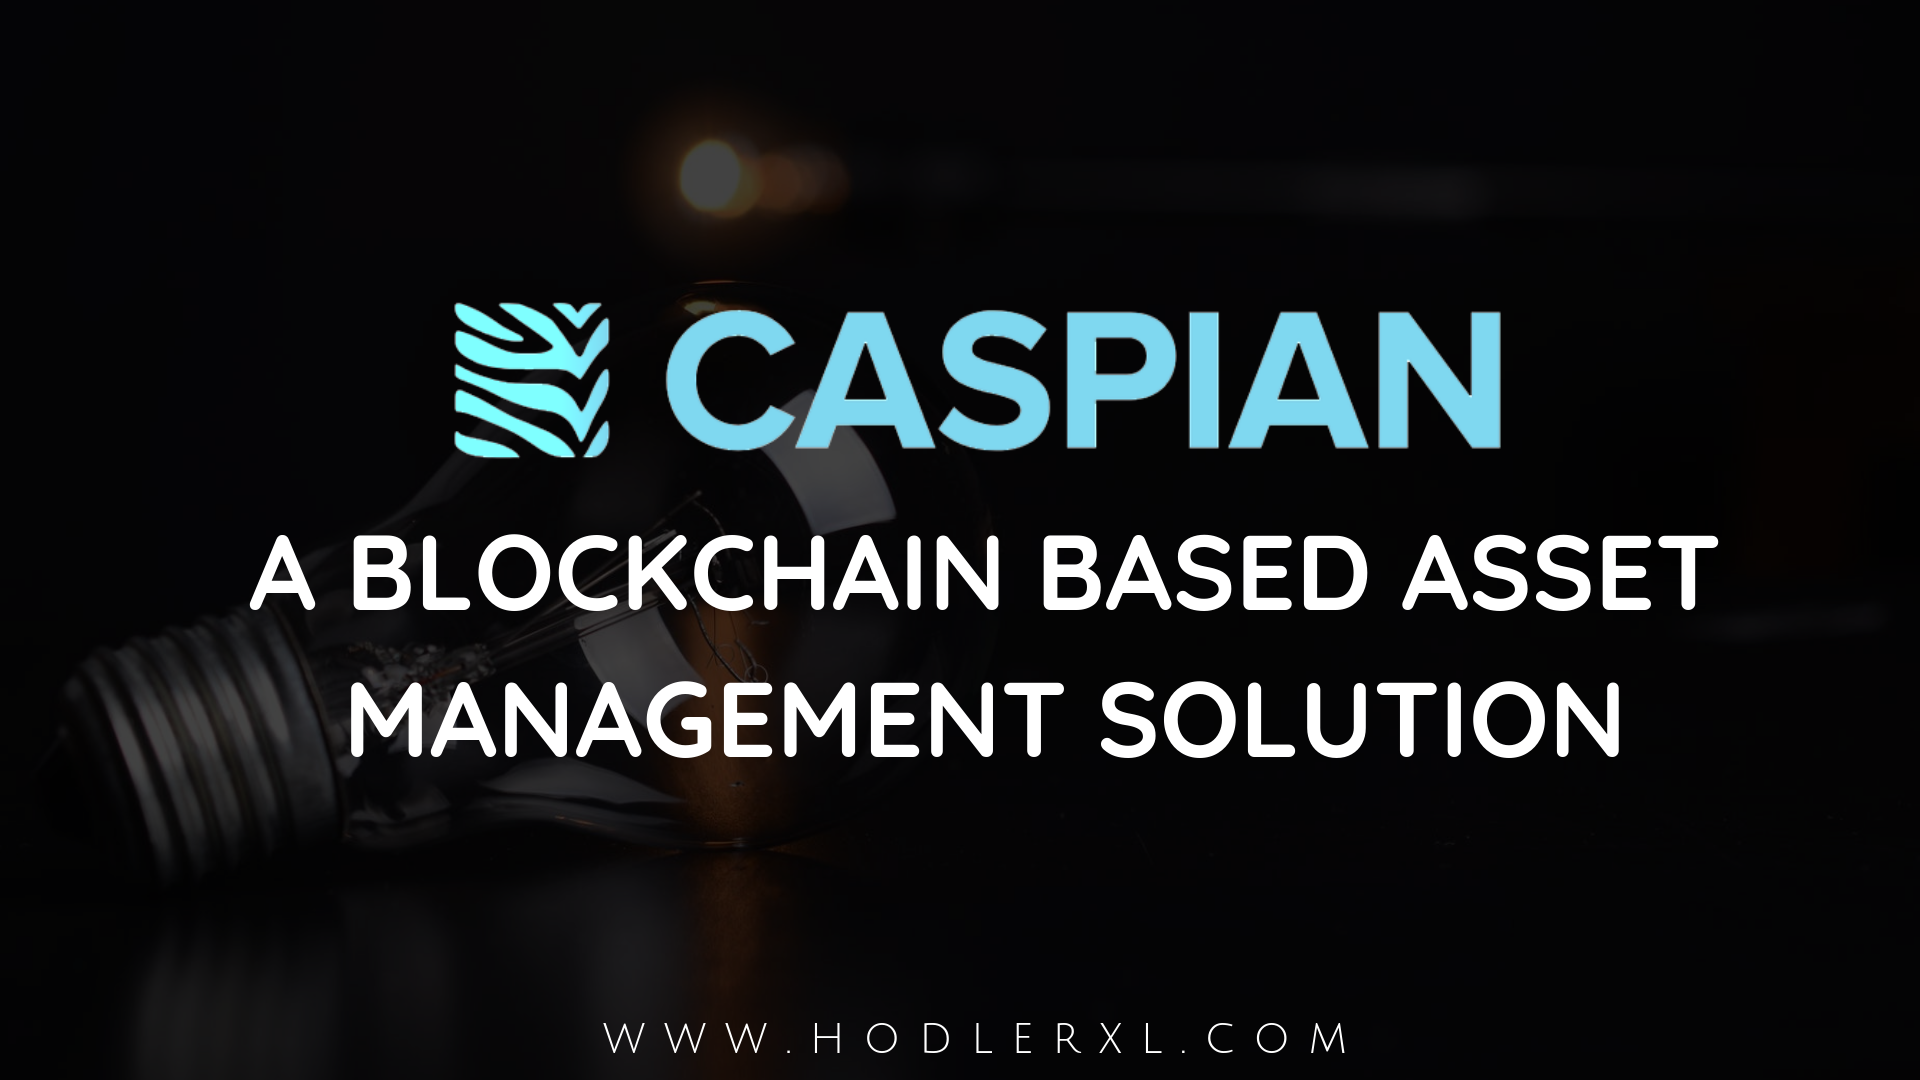 caspian A Blockchain Based Asset Management Solution